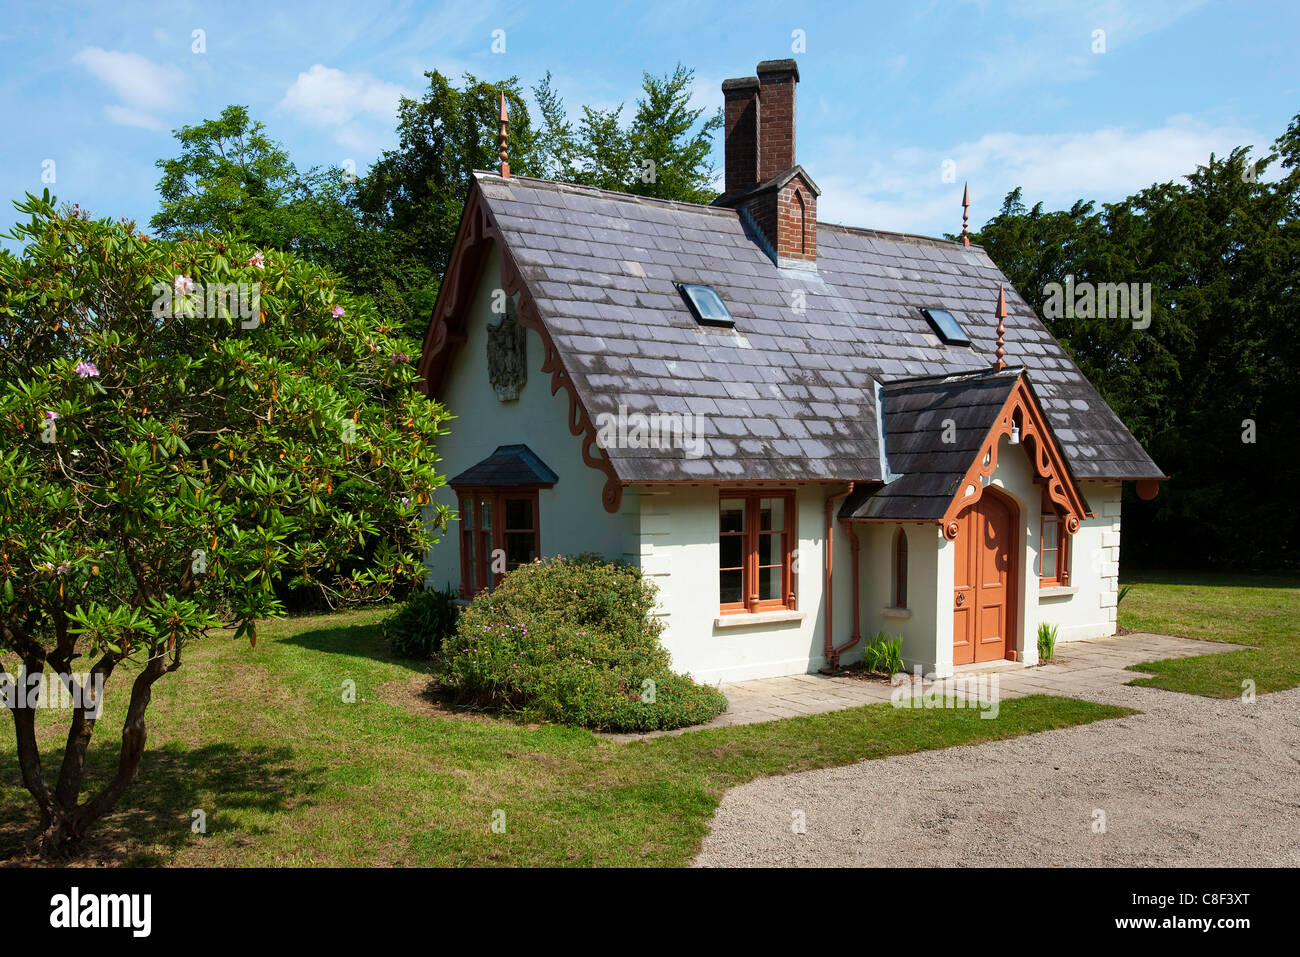 Small Irish Cottage Situated In A Wooden Area Stock Photo